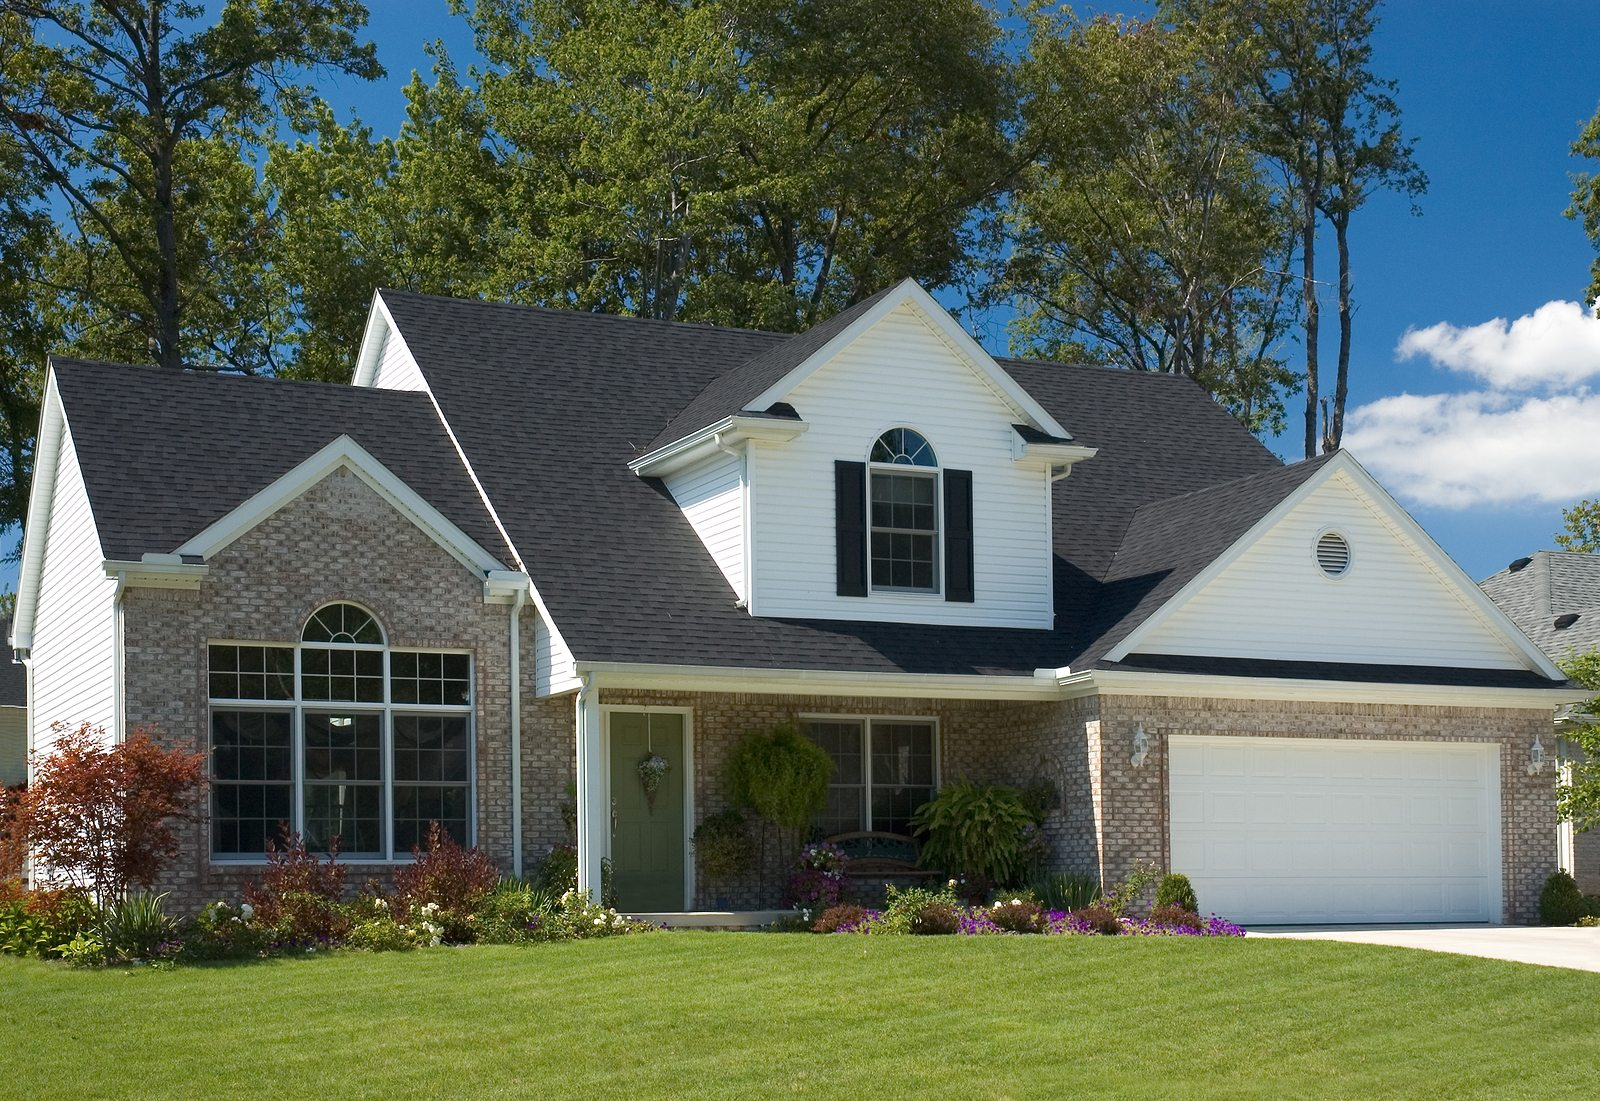 Demand for Homes in Region Outpaces Supply